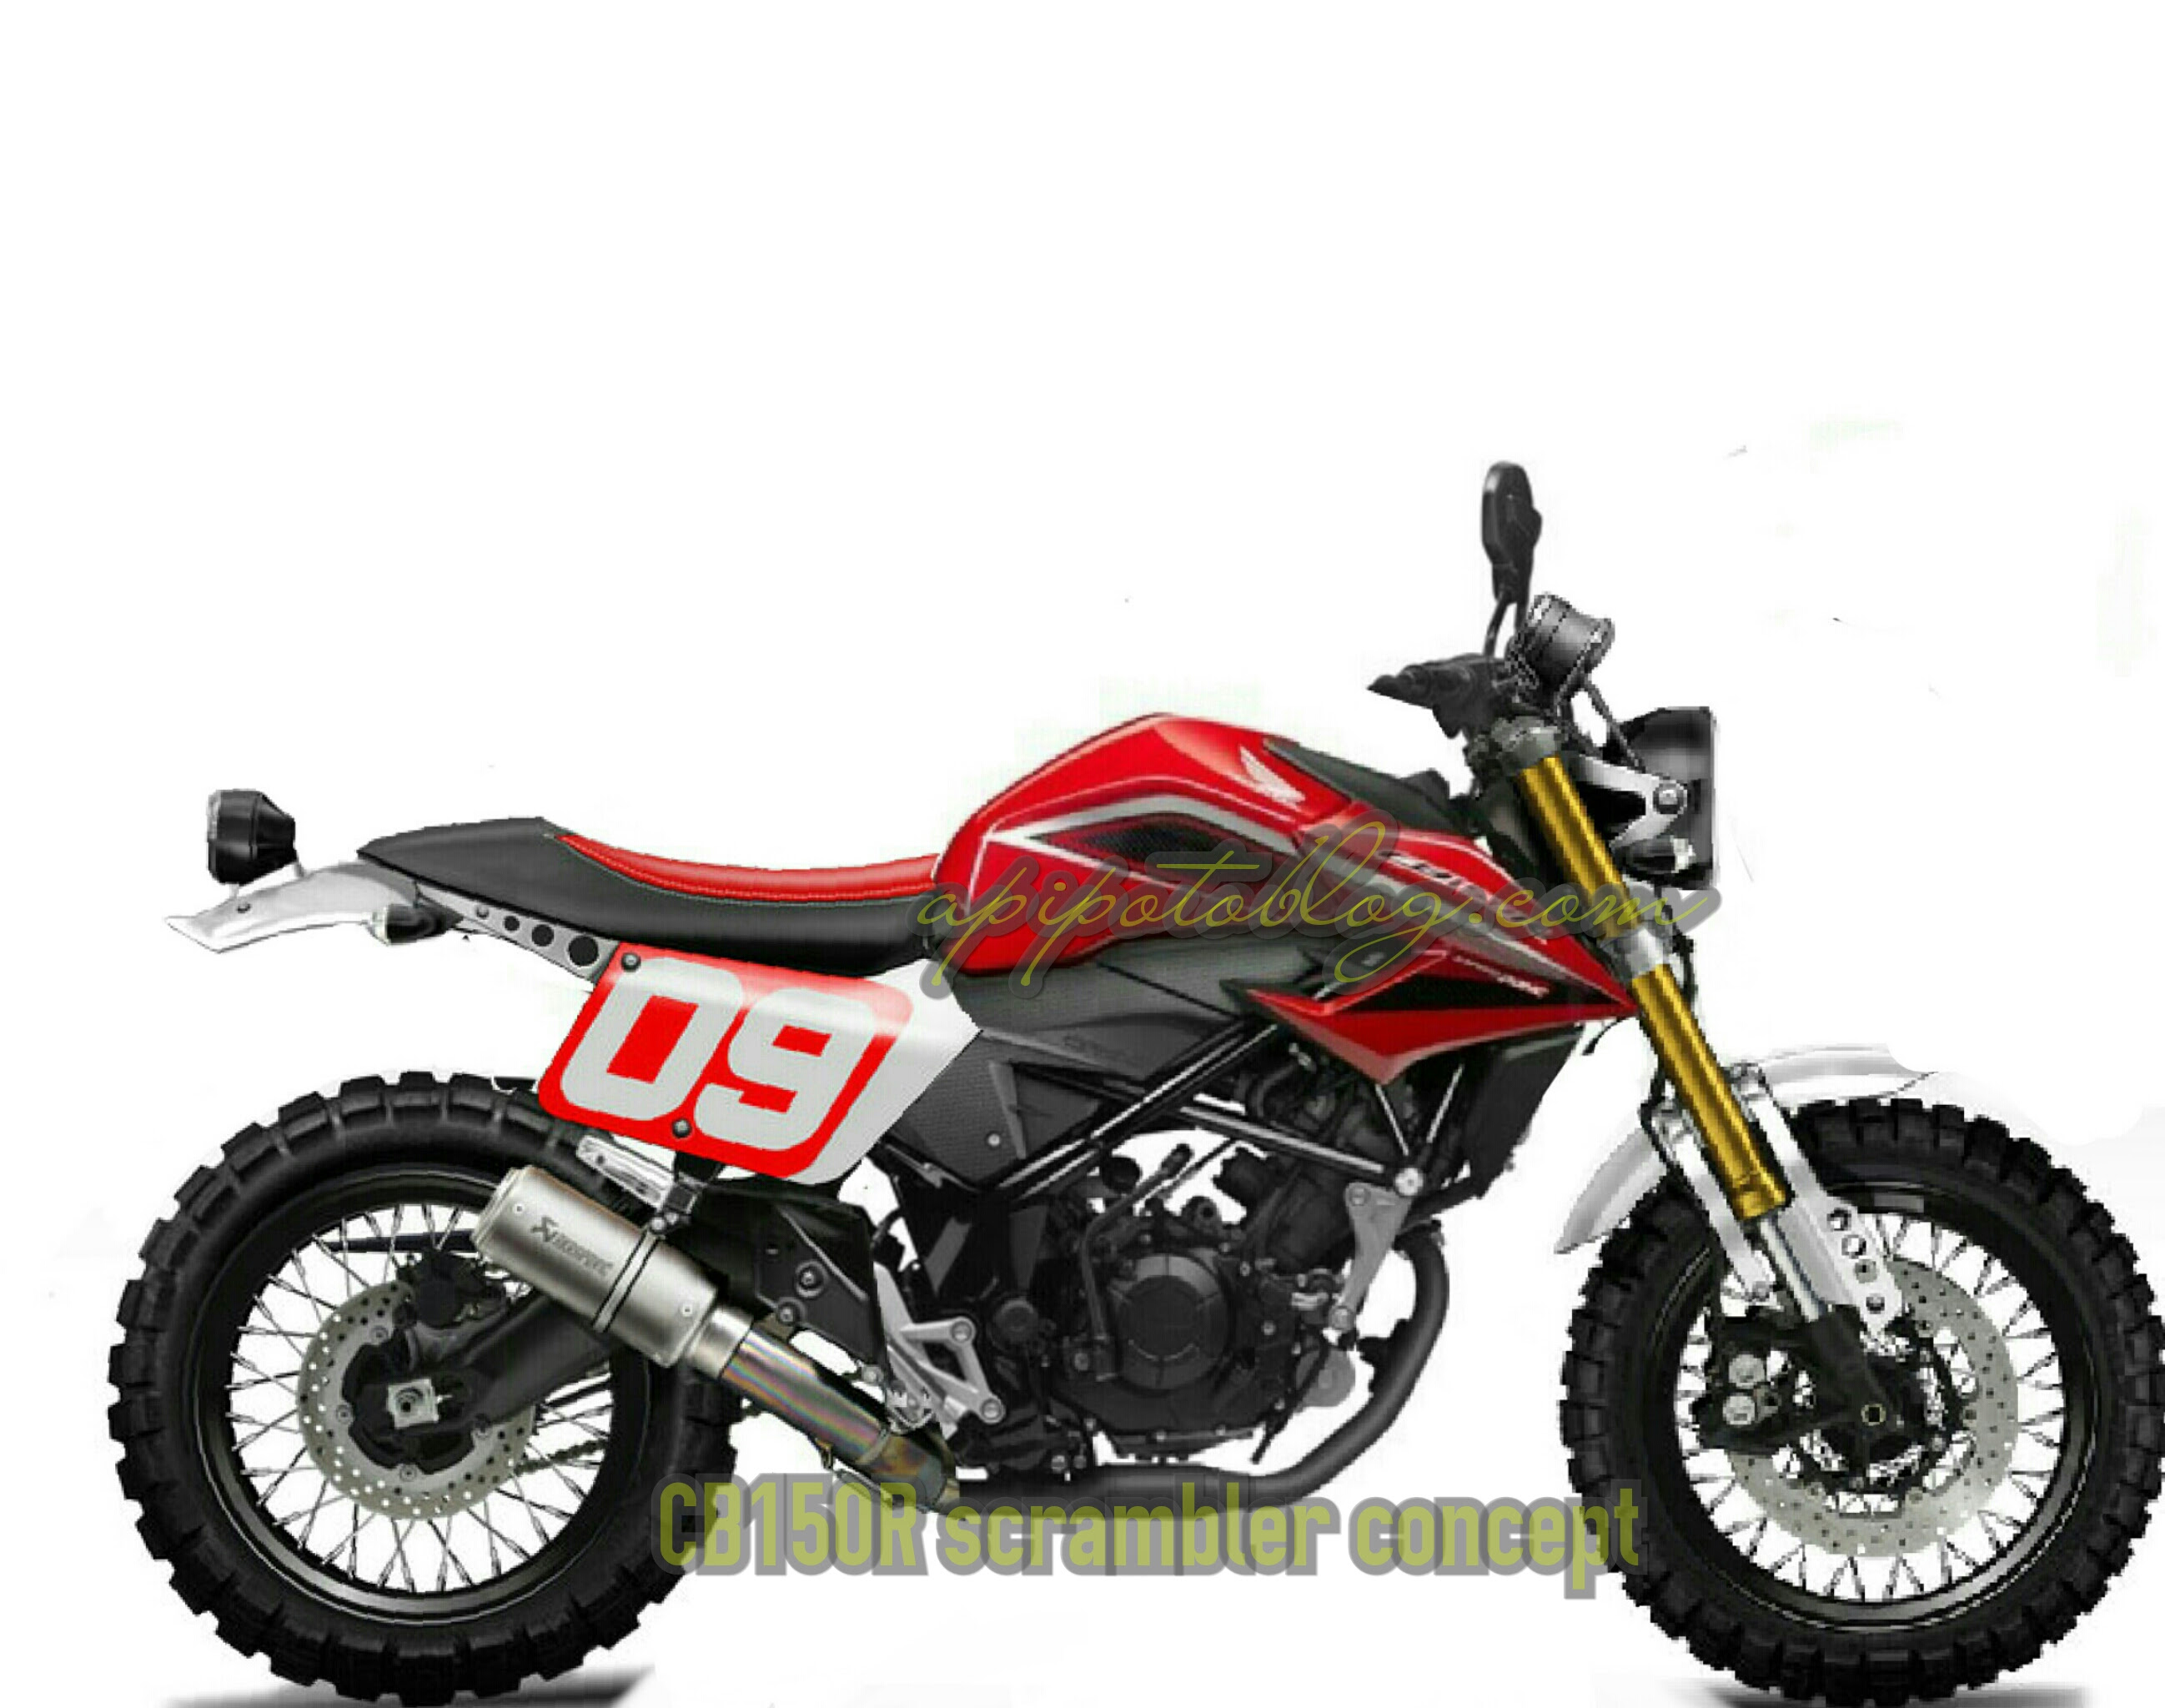 110 Modifikasi Motor Honda All New Cb 150r Modifikasi Motor Honda